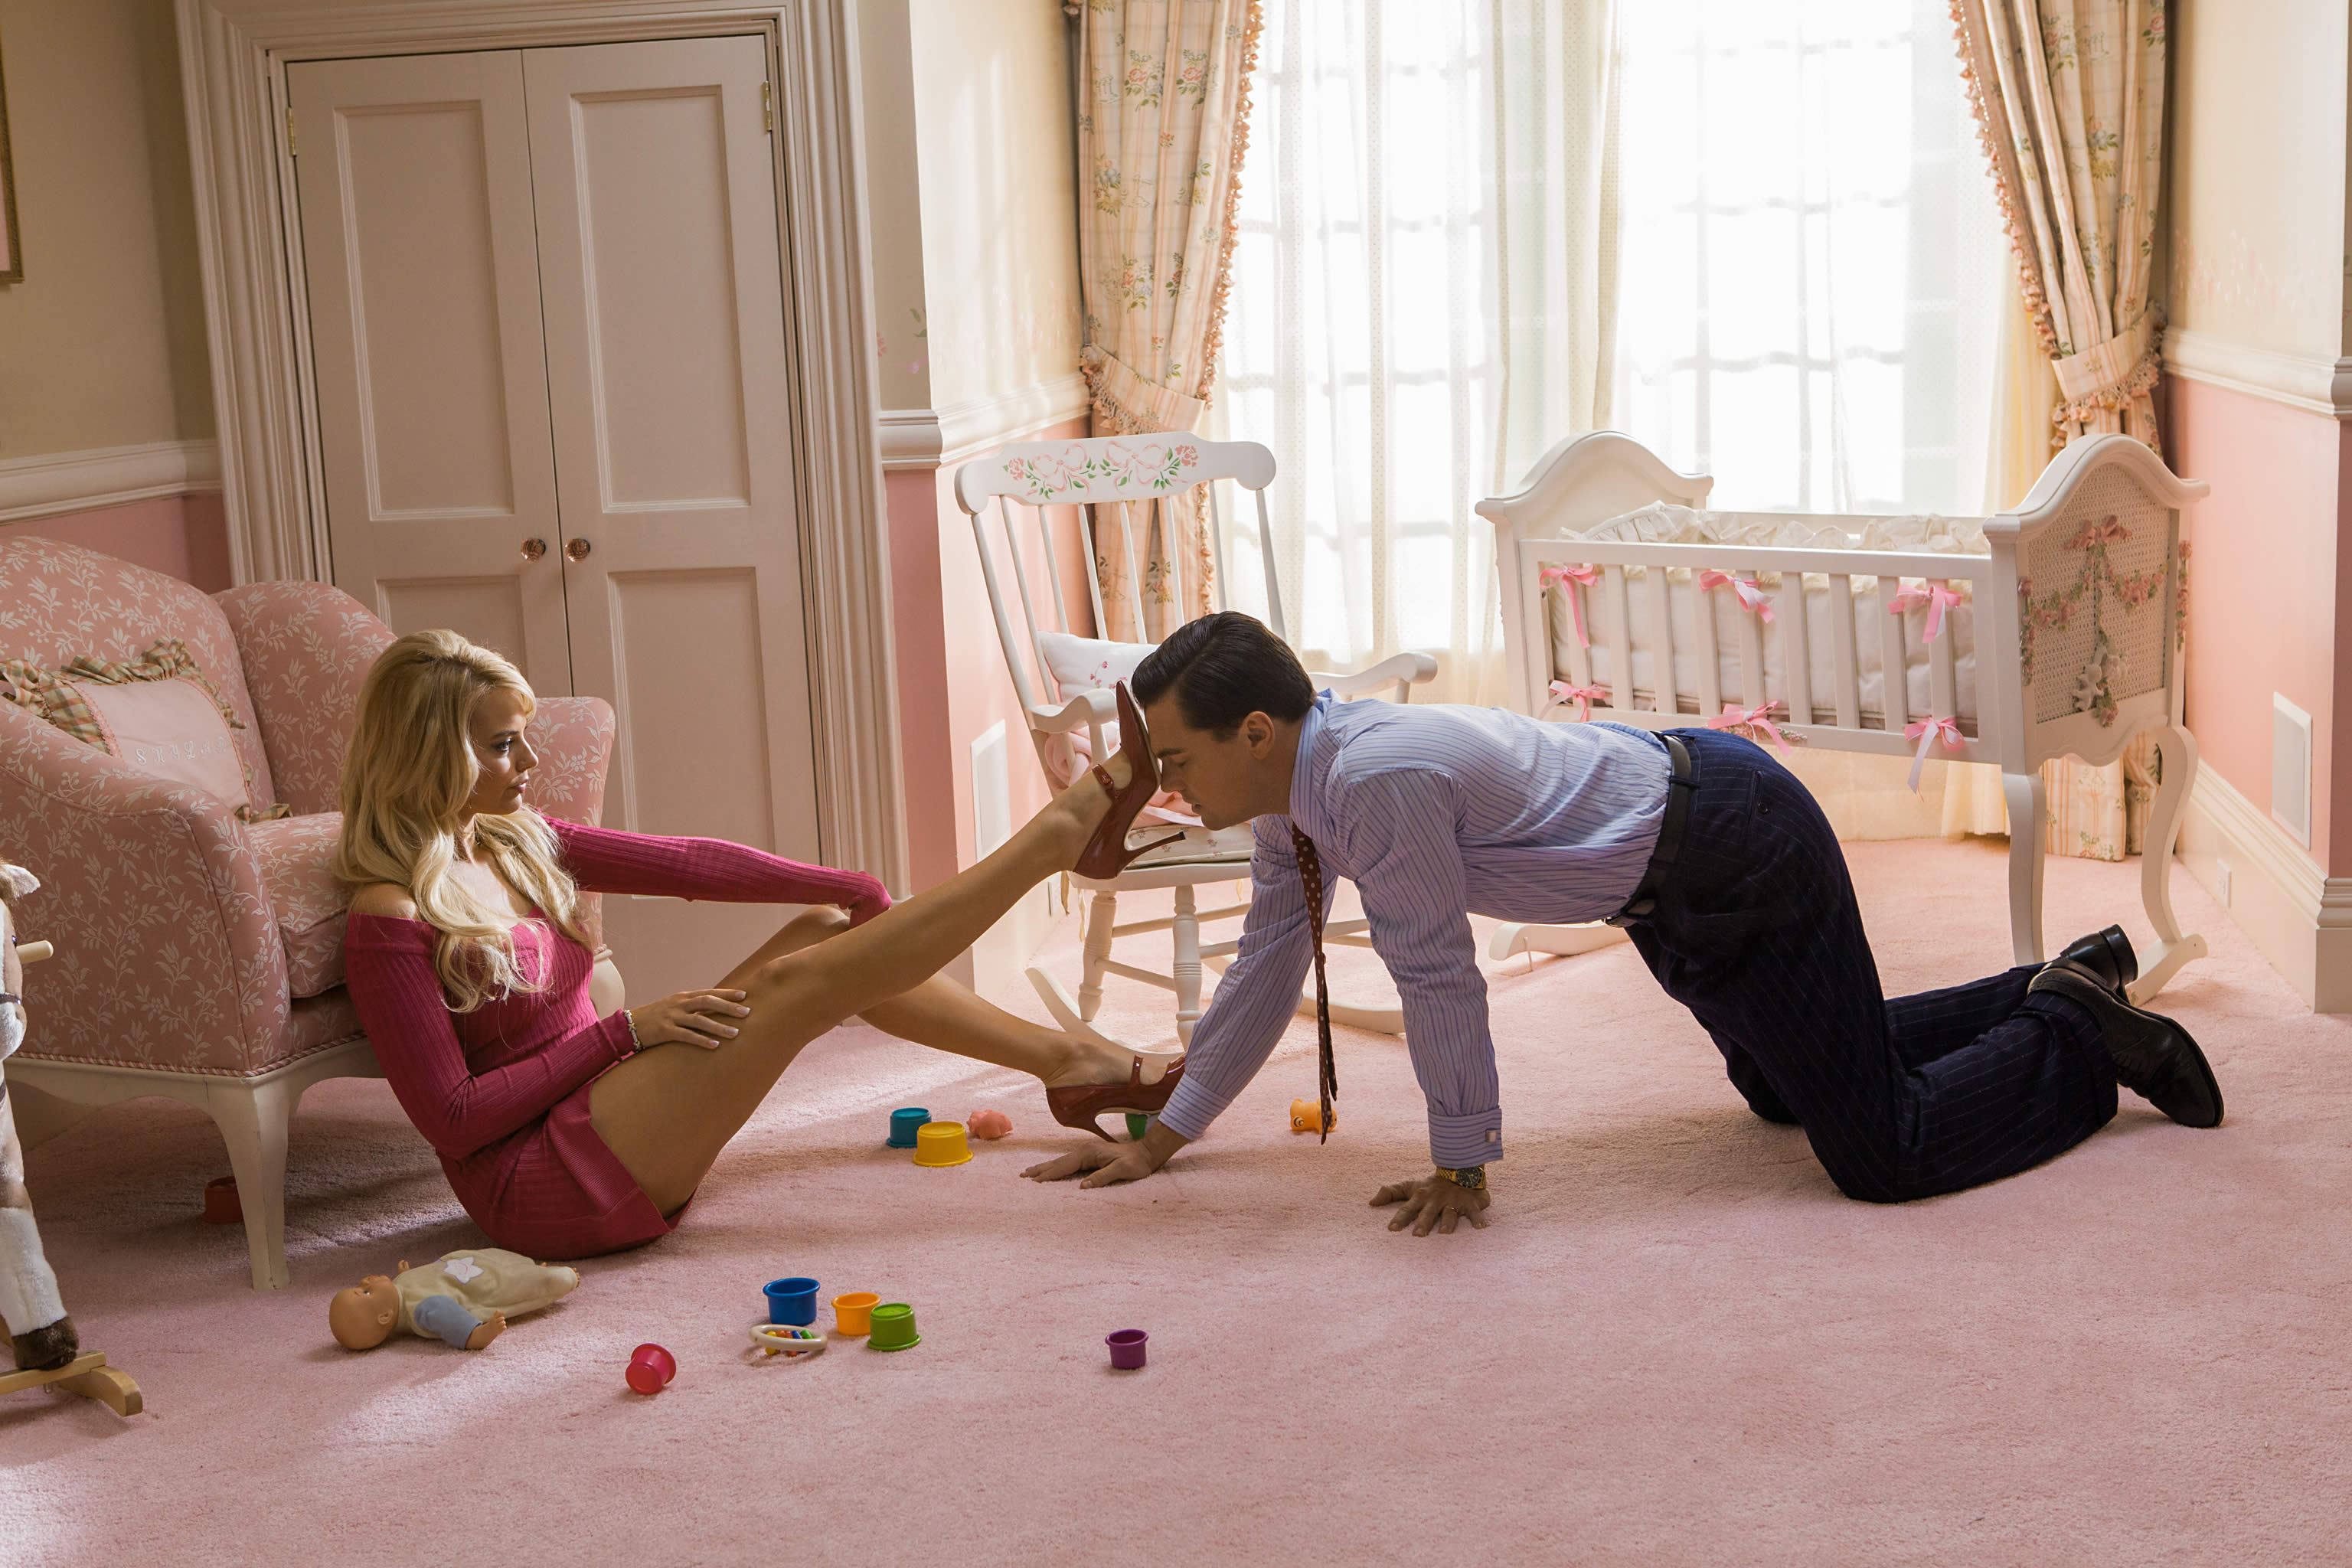 leonardo dicaprio with wife in baby's room, the wolf of wall street